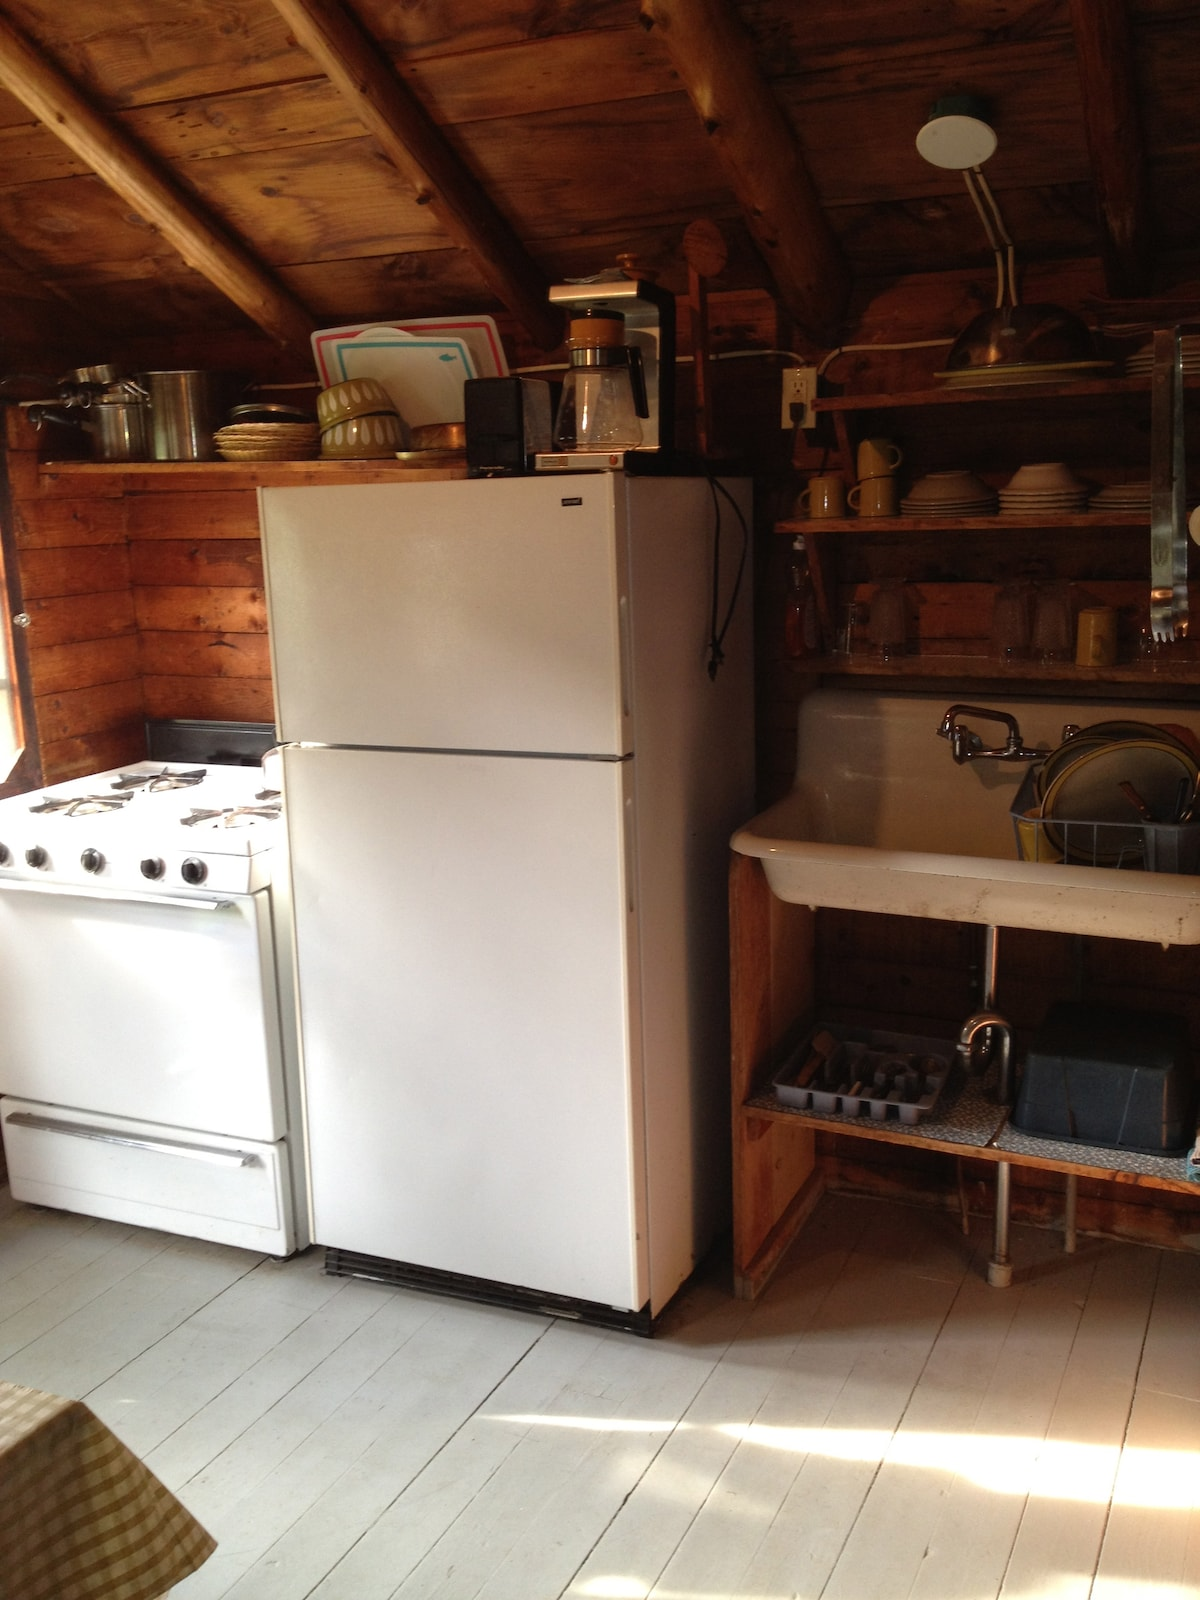 full, tidy, well organized kitchen.  Range, oven, fridge, sink. toaster, coffee maker, fully supplied with dishes, pots, etc.